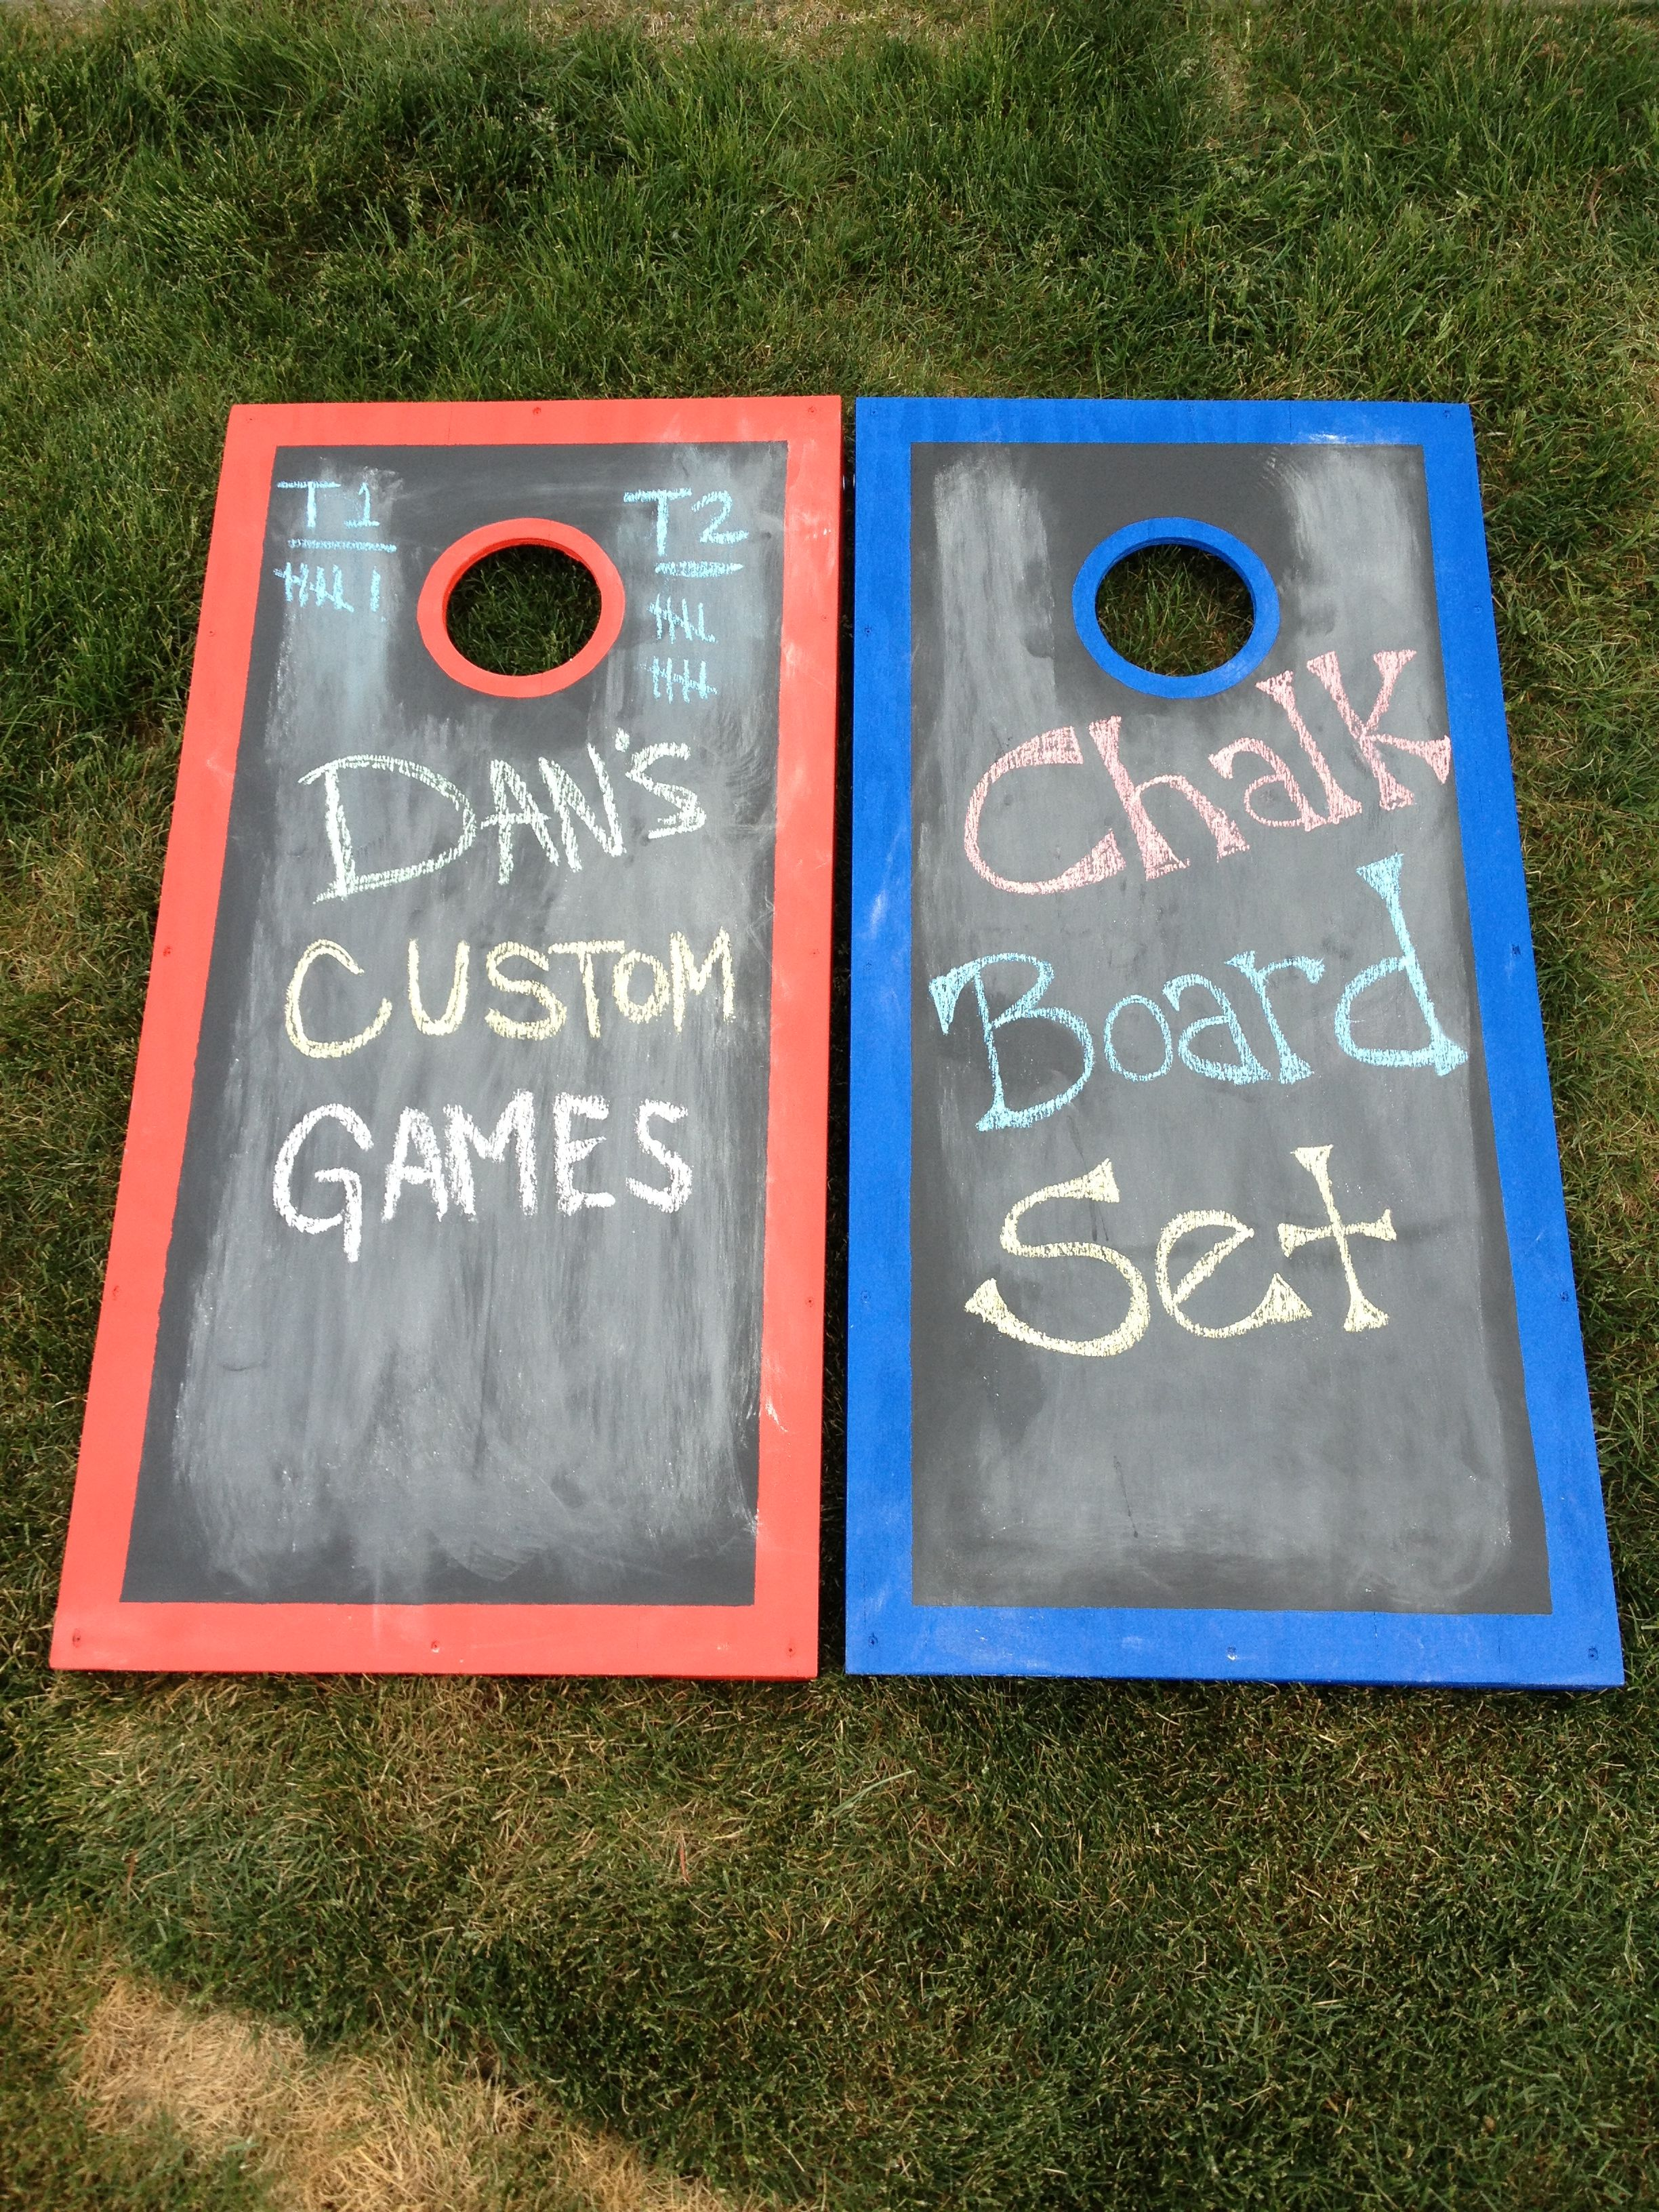 17 best images about cornhole design ideas on pinterest stains cornhole set and corn hole game - Cornhole Design Ideas